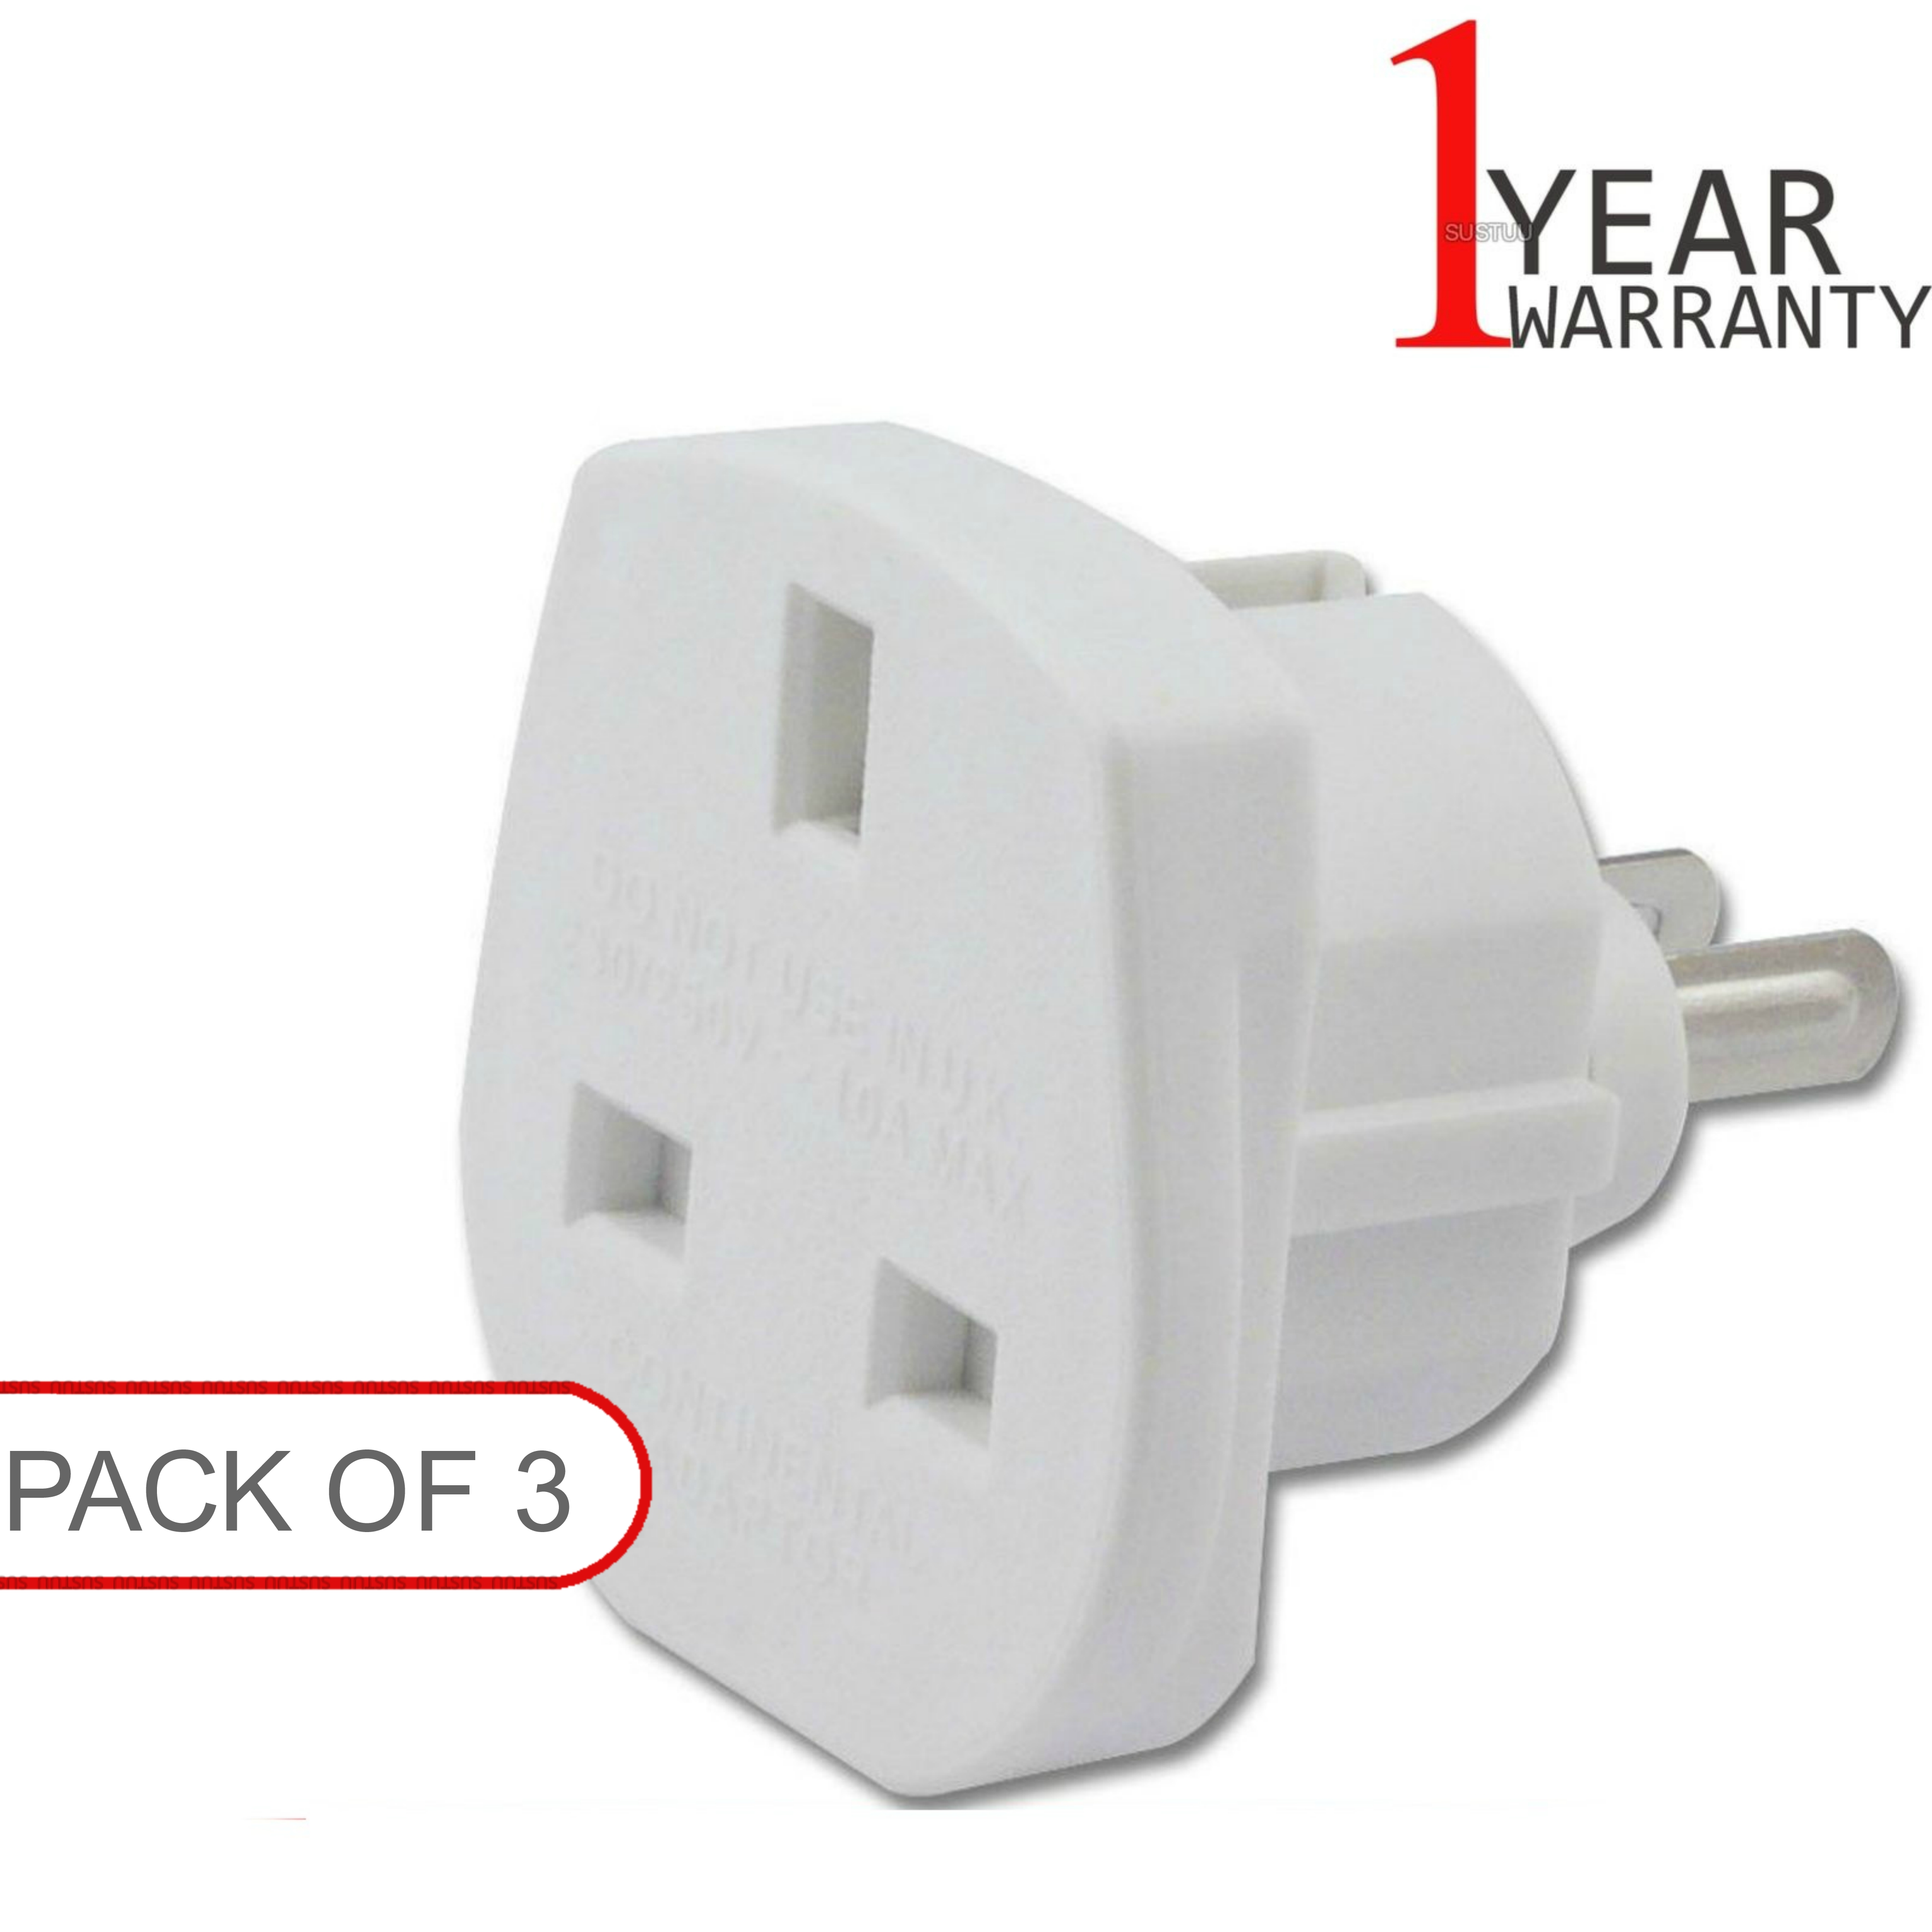 3 x UK TO USA US AMERICA /CANADA / AUSTRALIA / NEW ZEALAND TRAVEL PLUG ADAPTOR